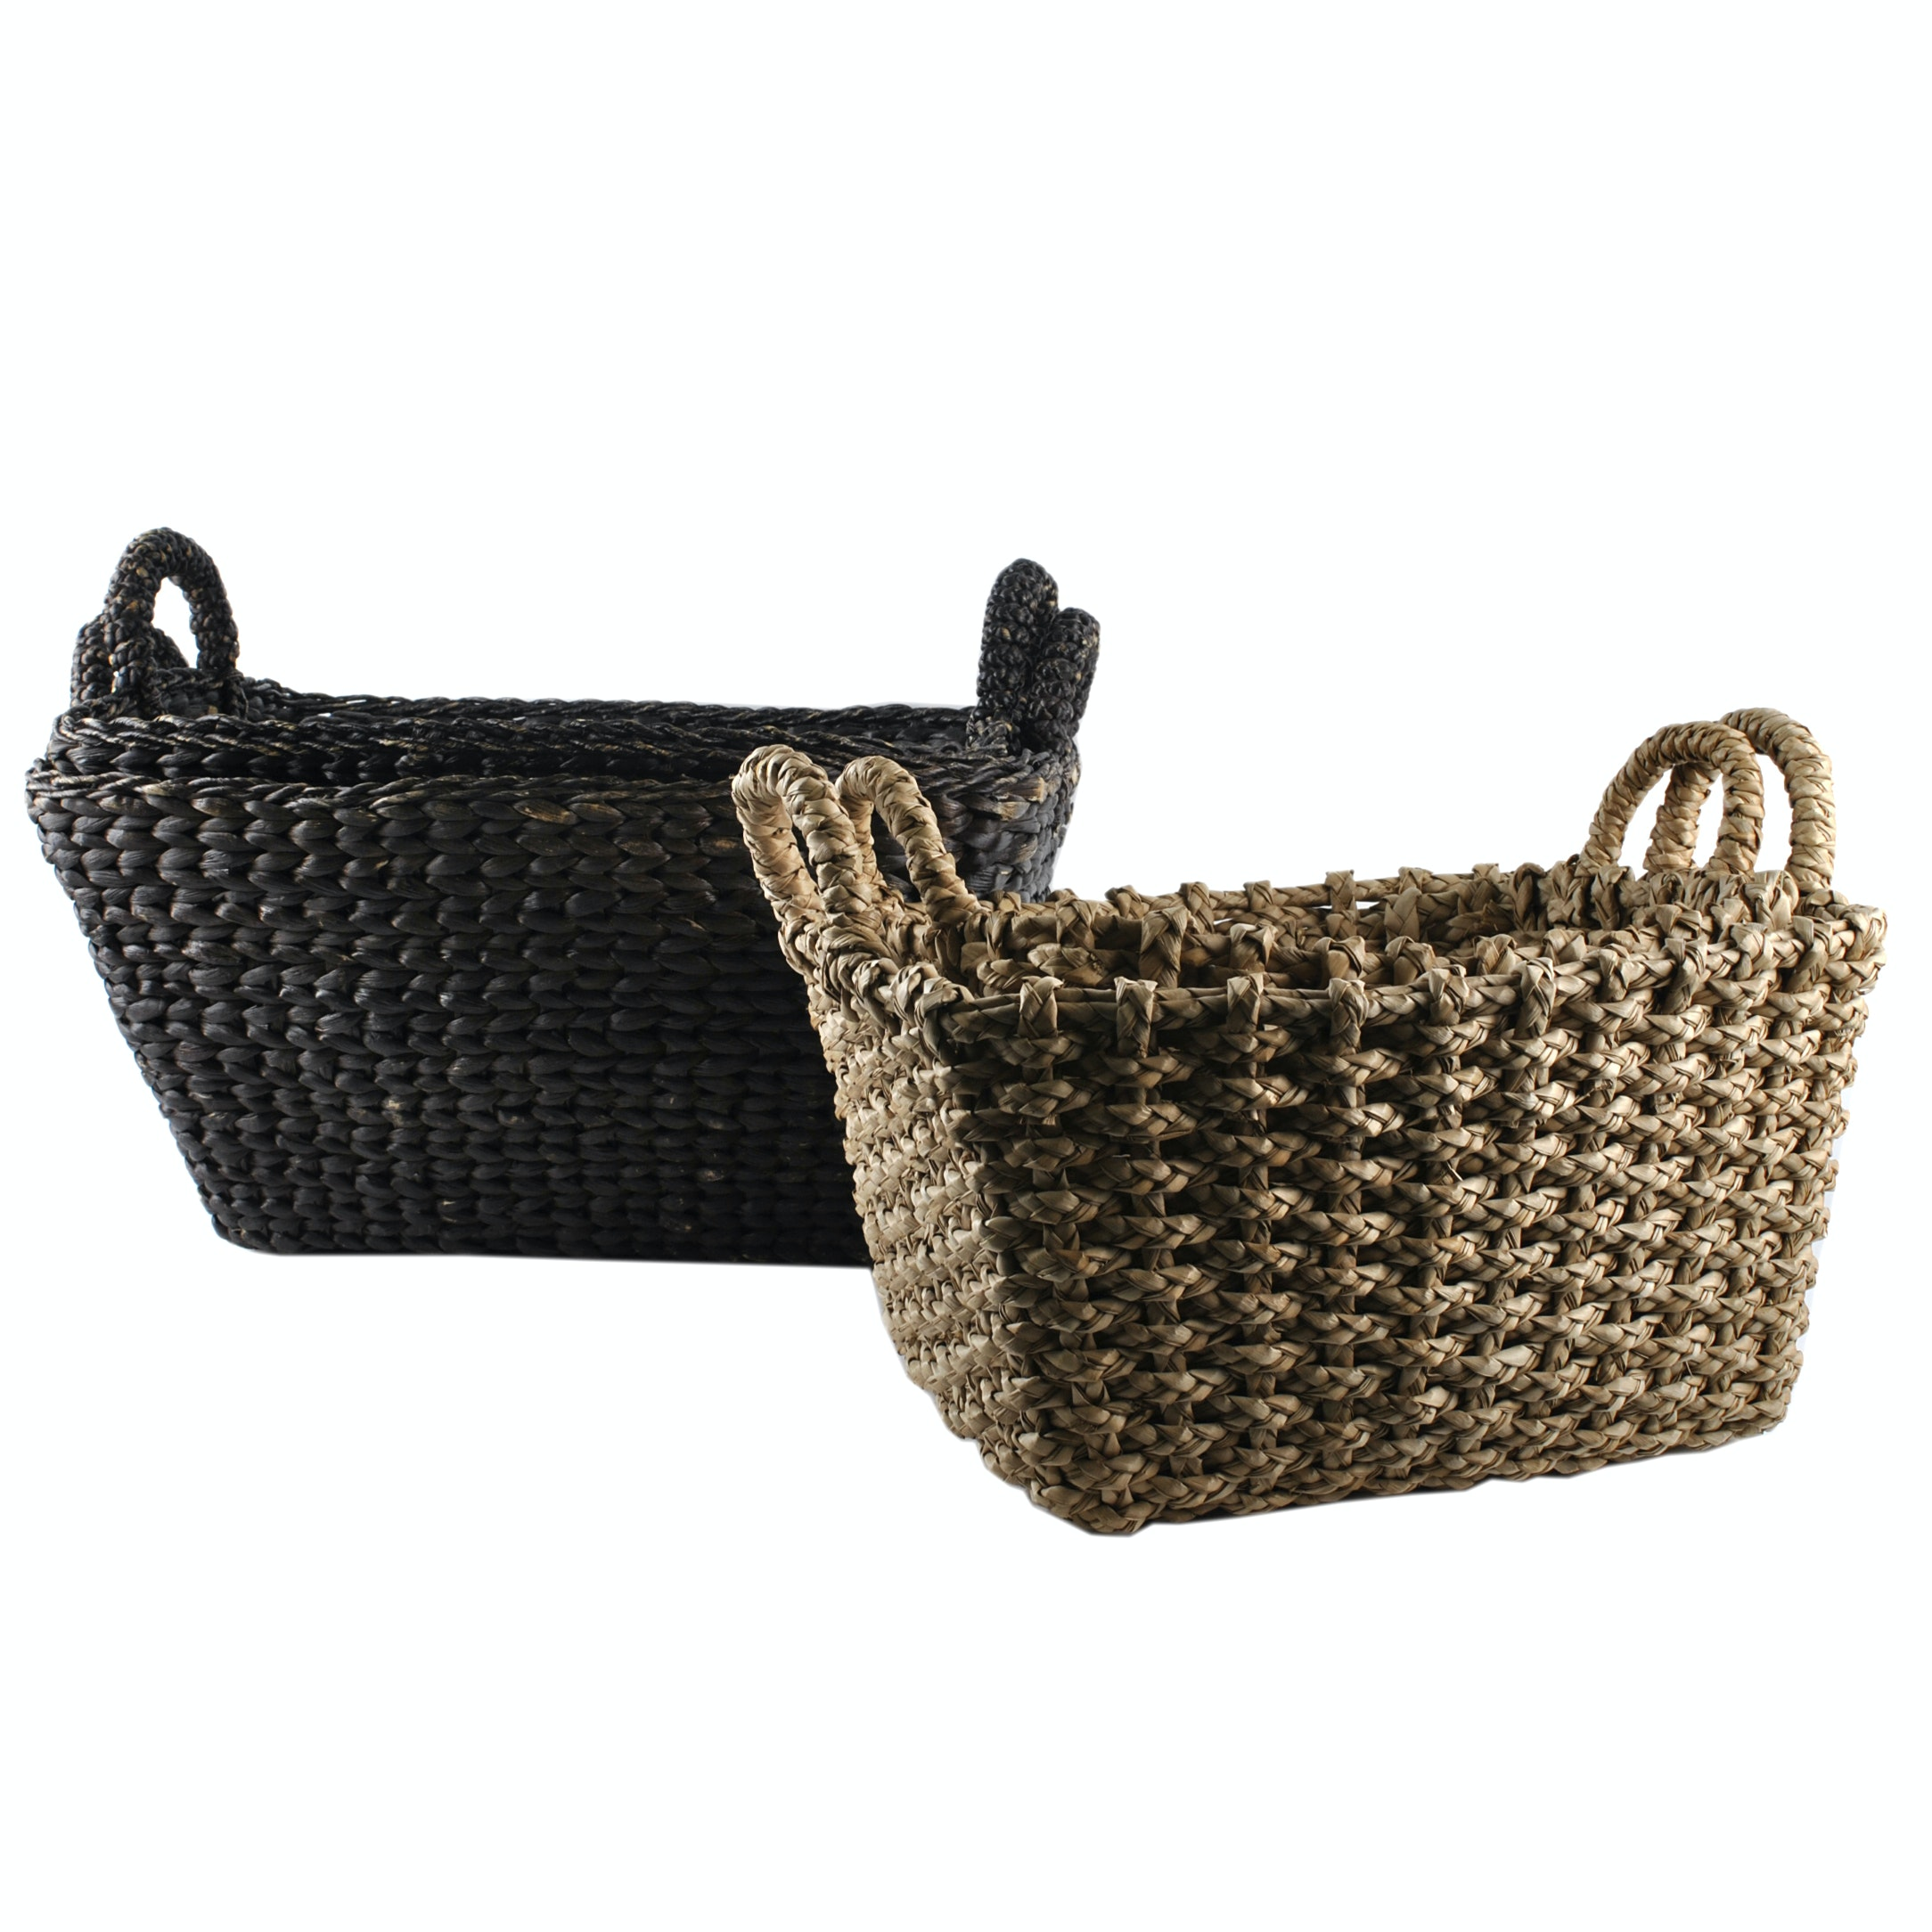 Stained and Natural Sea Grass Woven Rectangular Handled Baskets